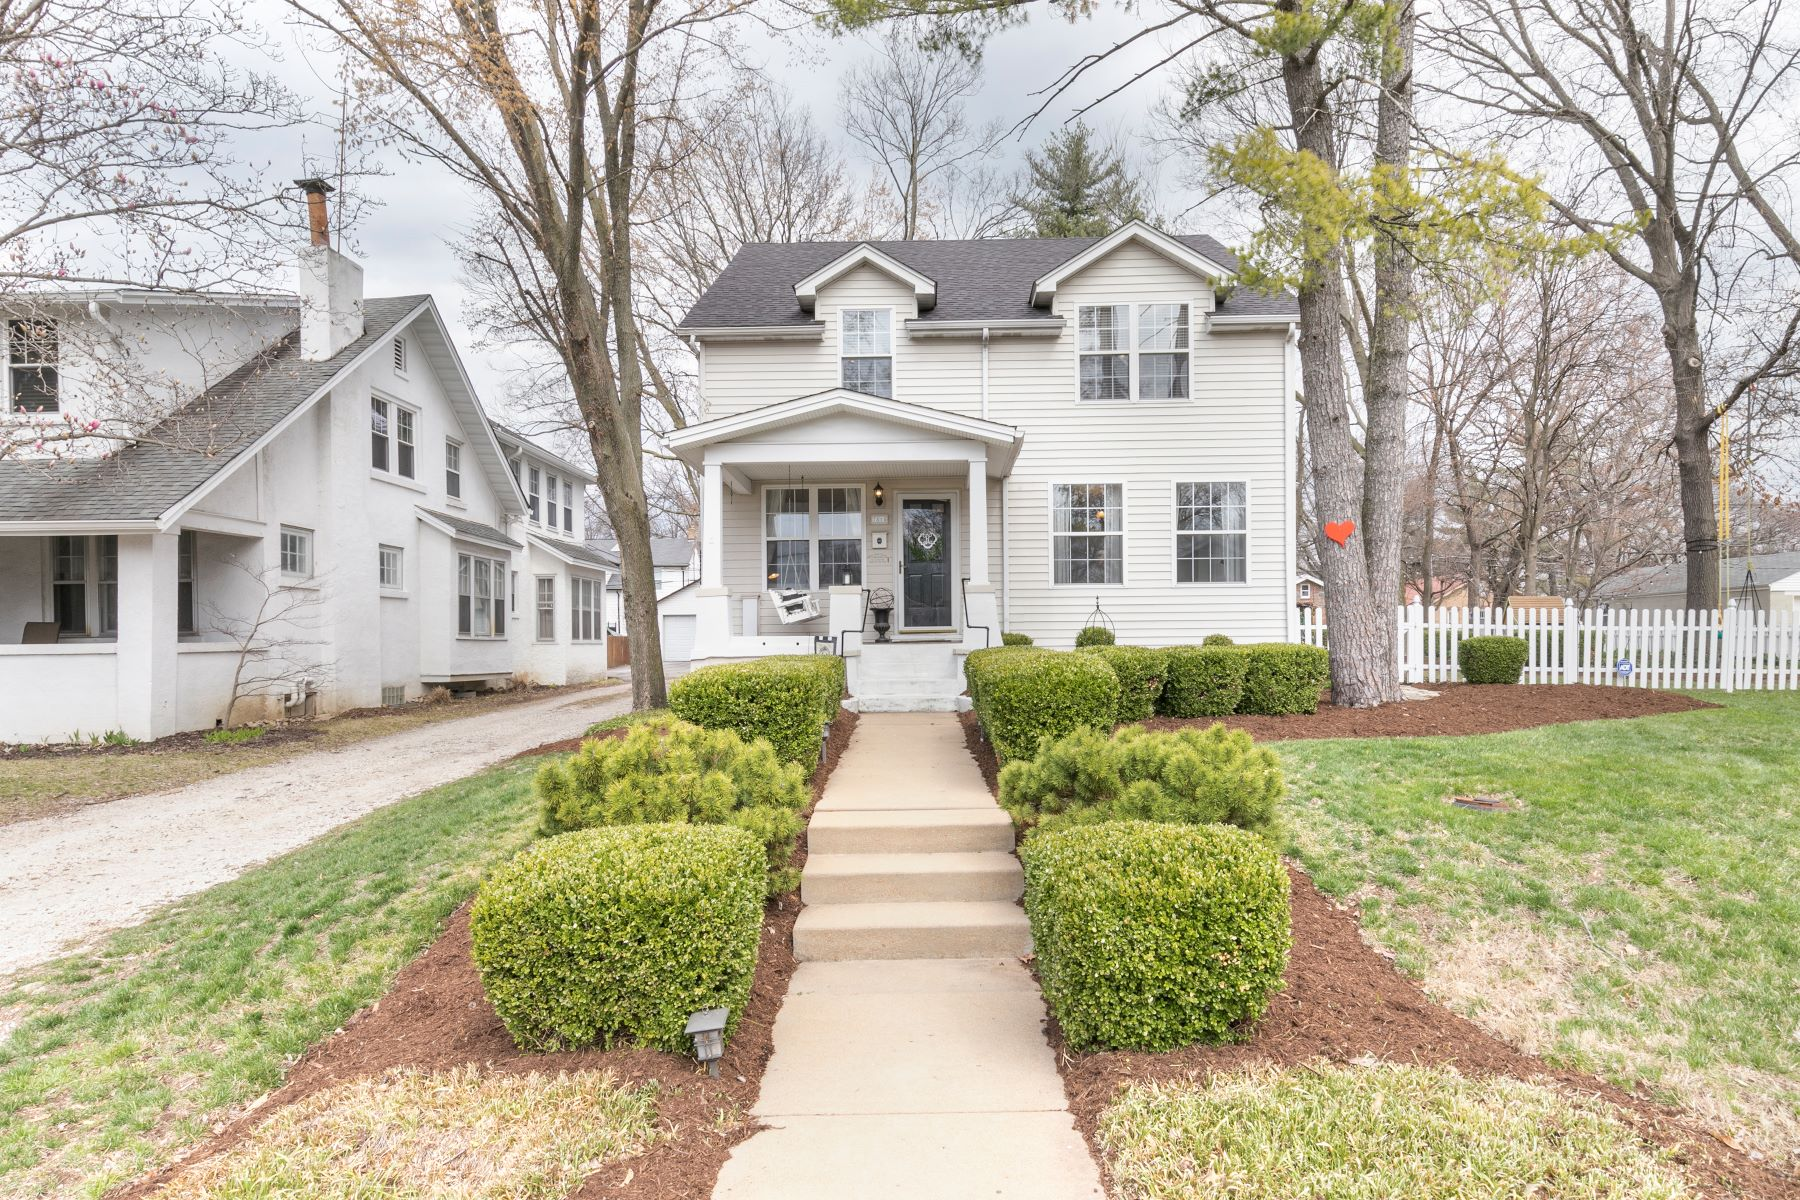 Single Family Home for Sale at Quintessential Webster Groves Home 7815 Weil Avenue St. Louis, Missouri 63119 United States